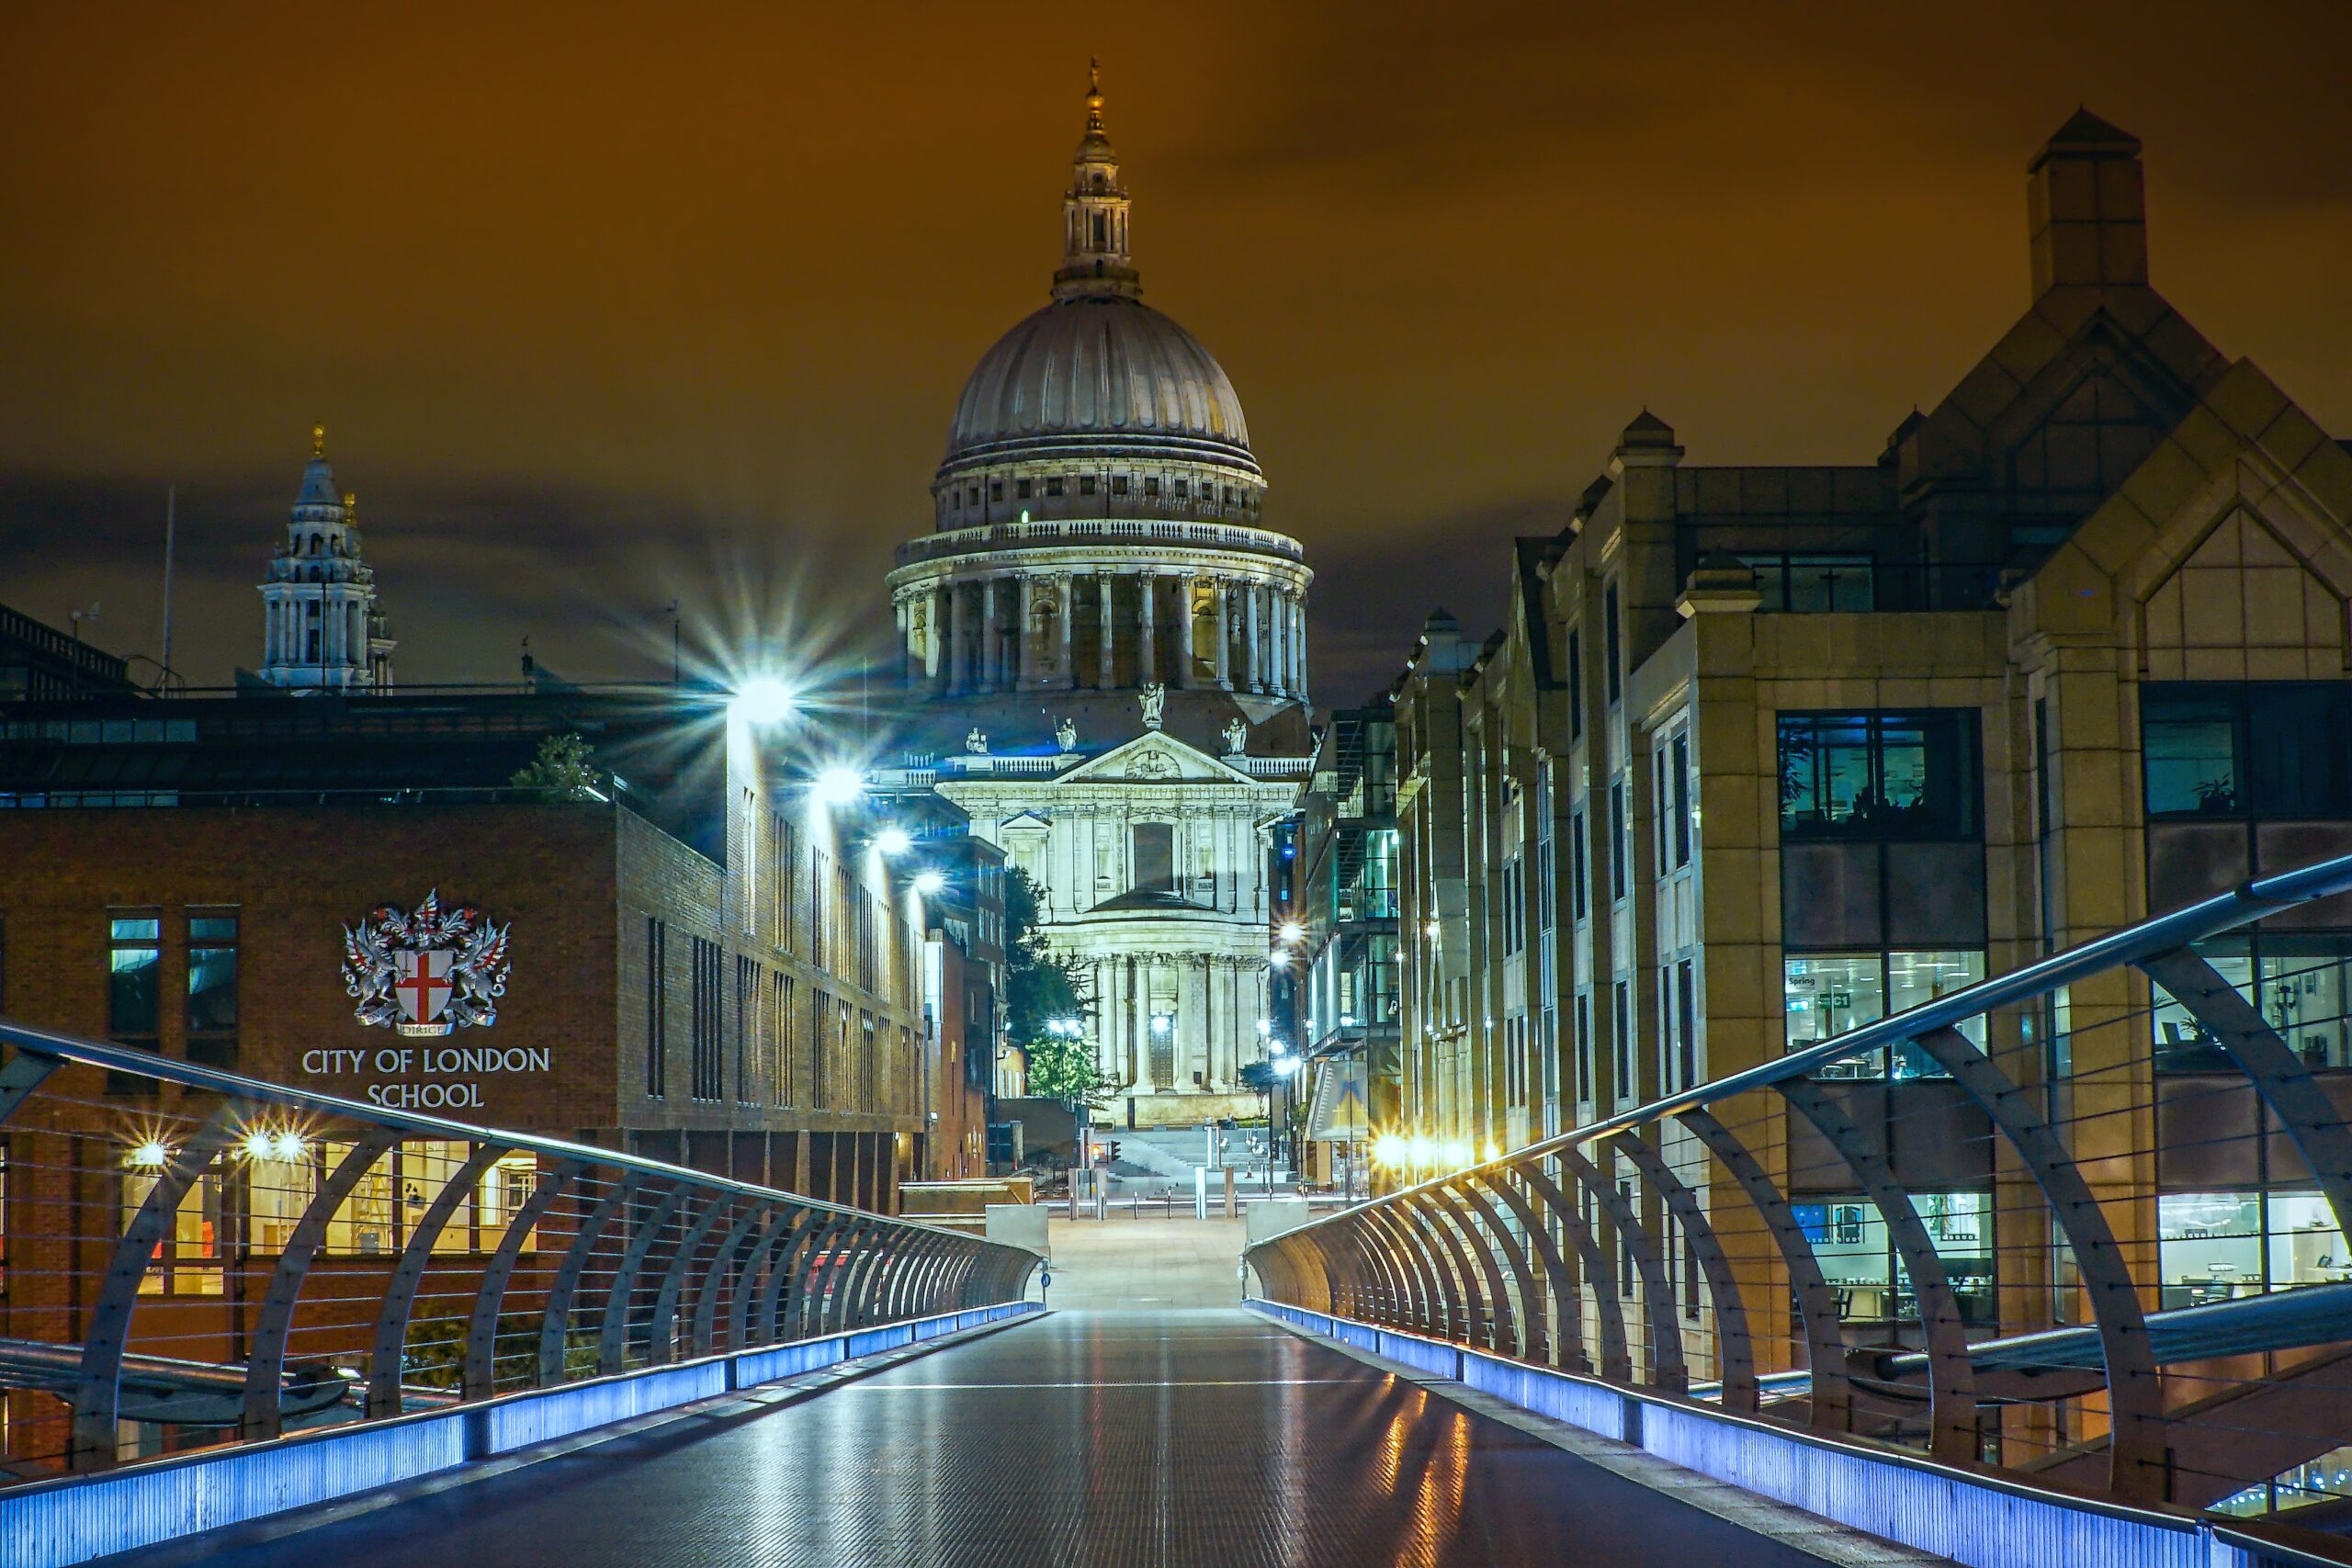 stefan-siegel-Millenium Bridge at night with City of London School -unsplash